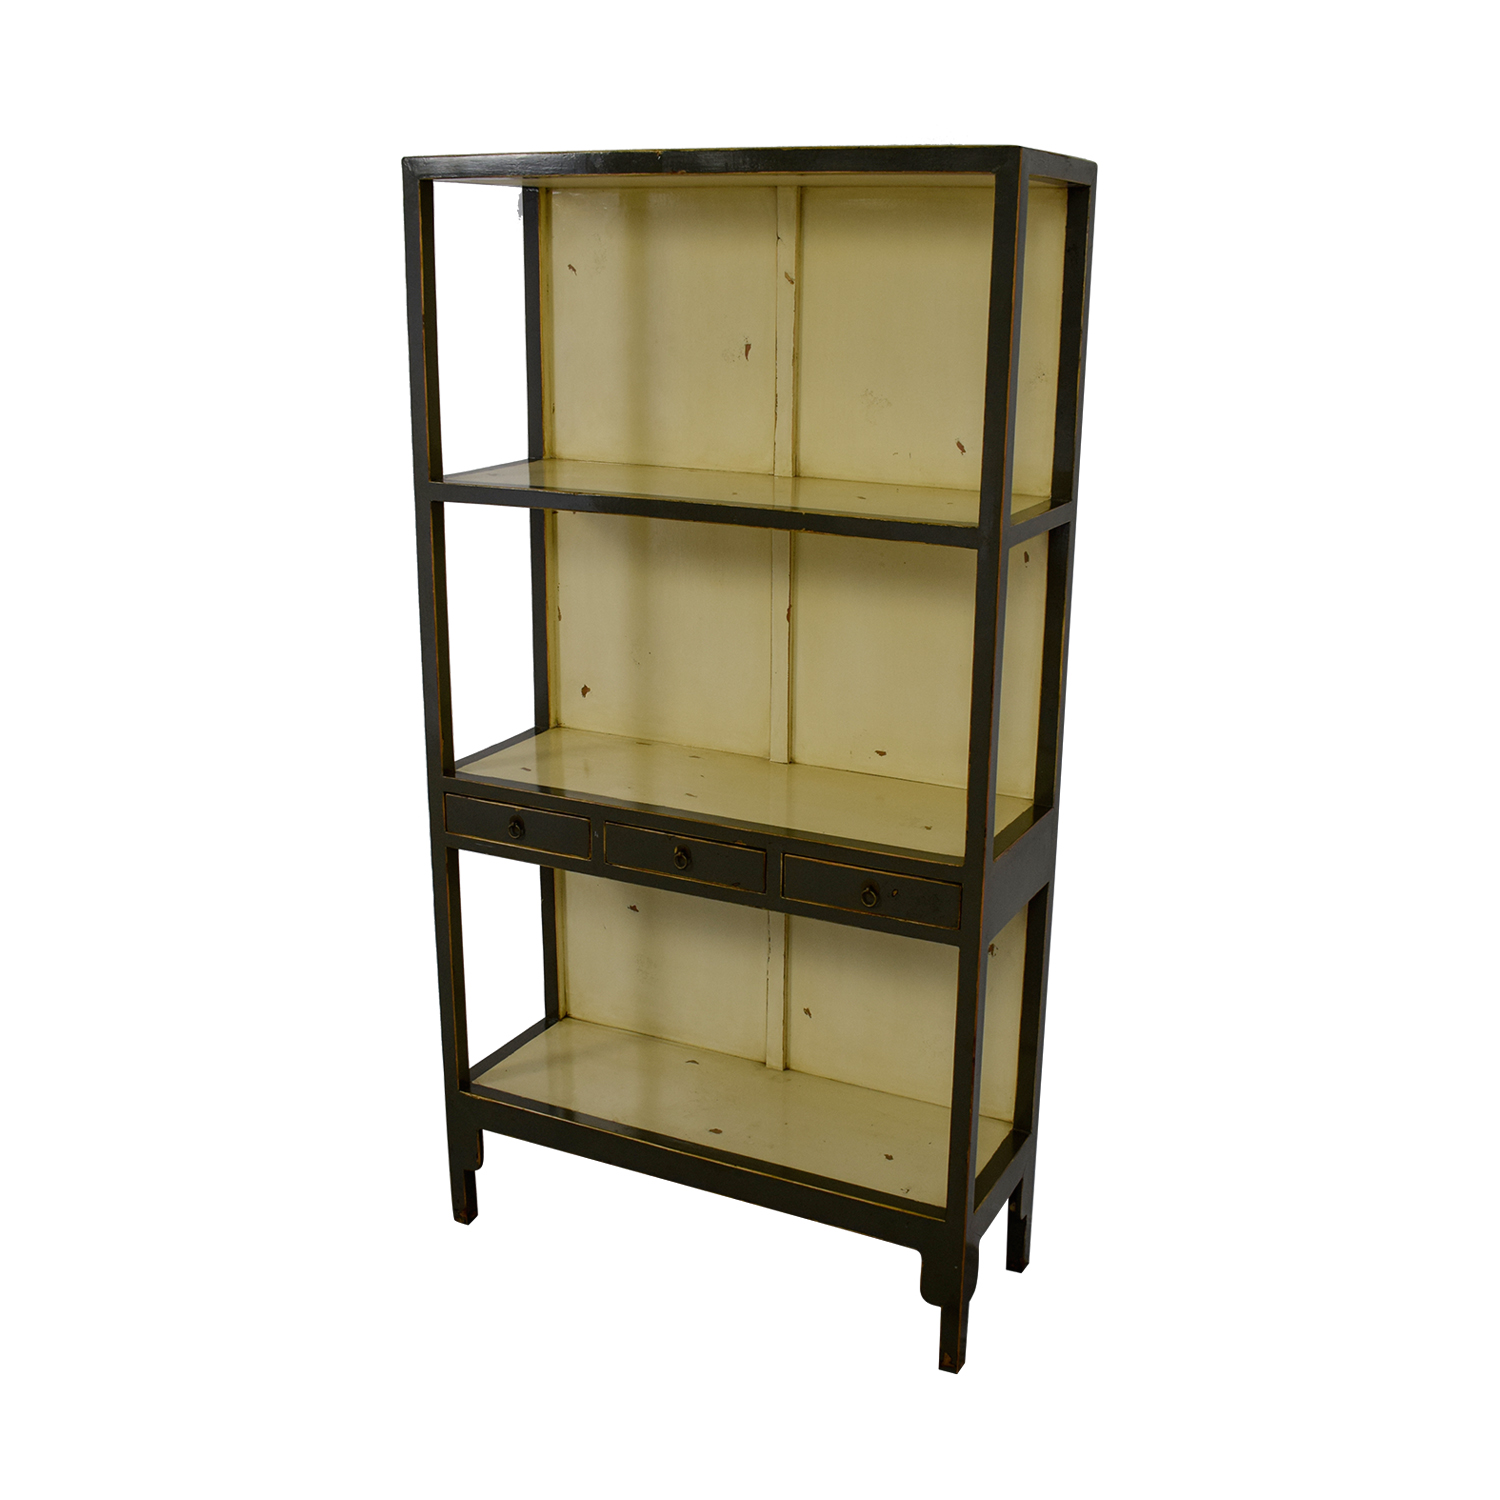 90 Off Horchow Horchow Distressed Decorative Shelving Storage